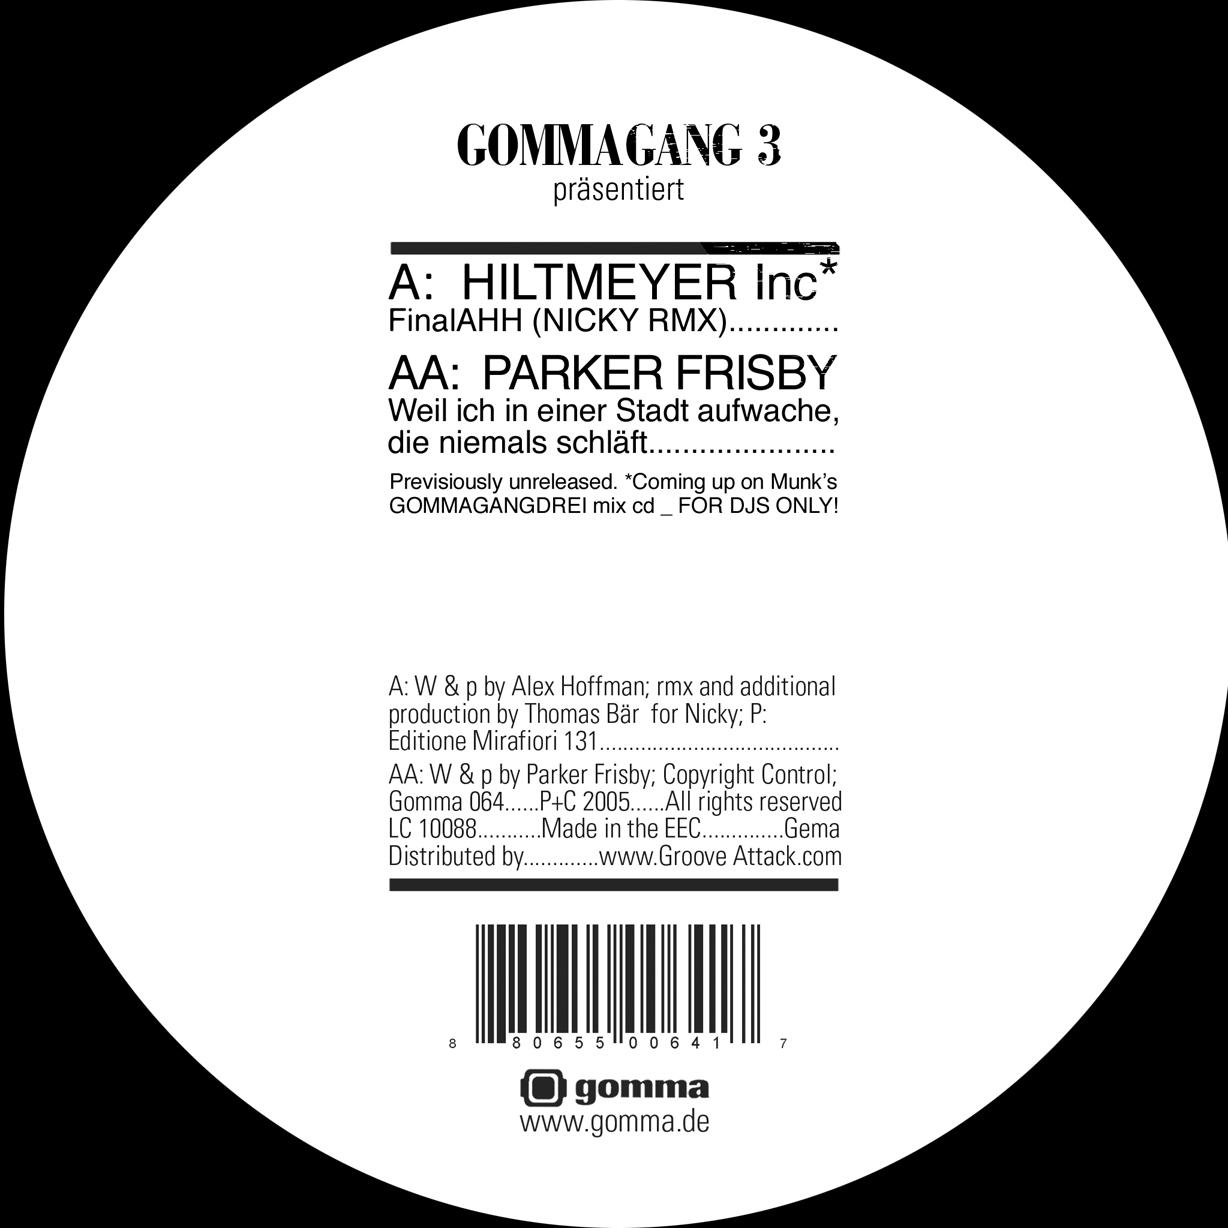 Parker Frisby - Hiltmeyer Inc Gommagang 3